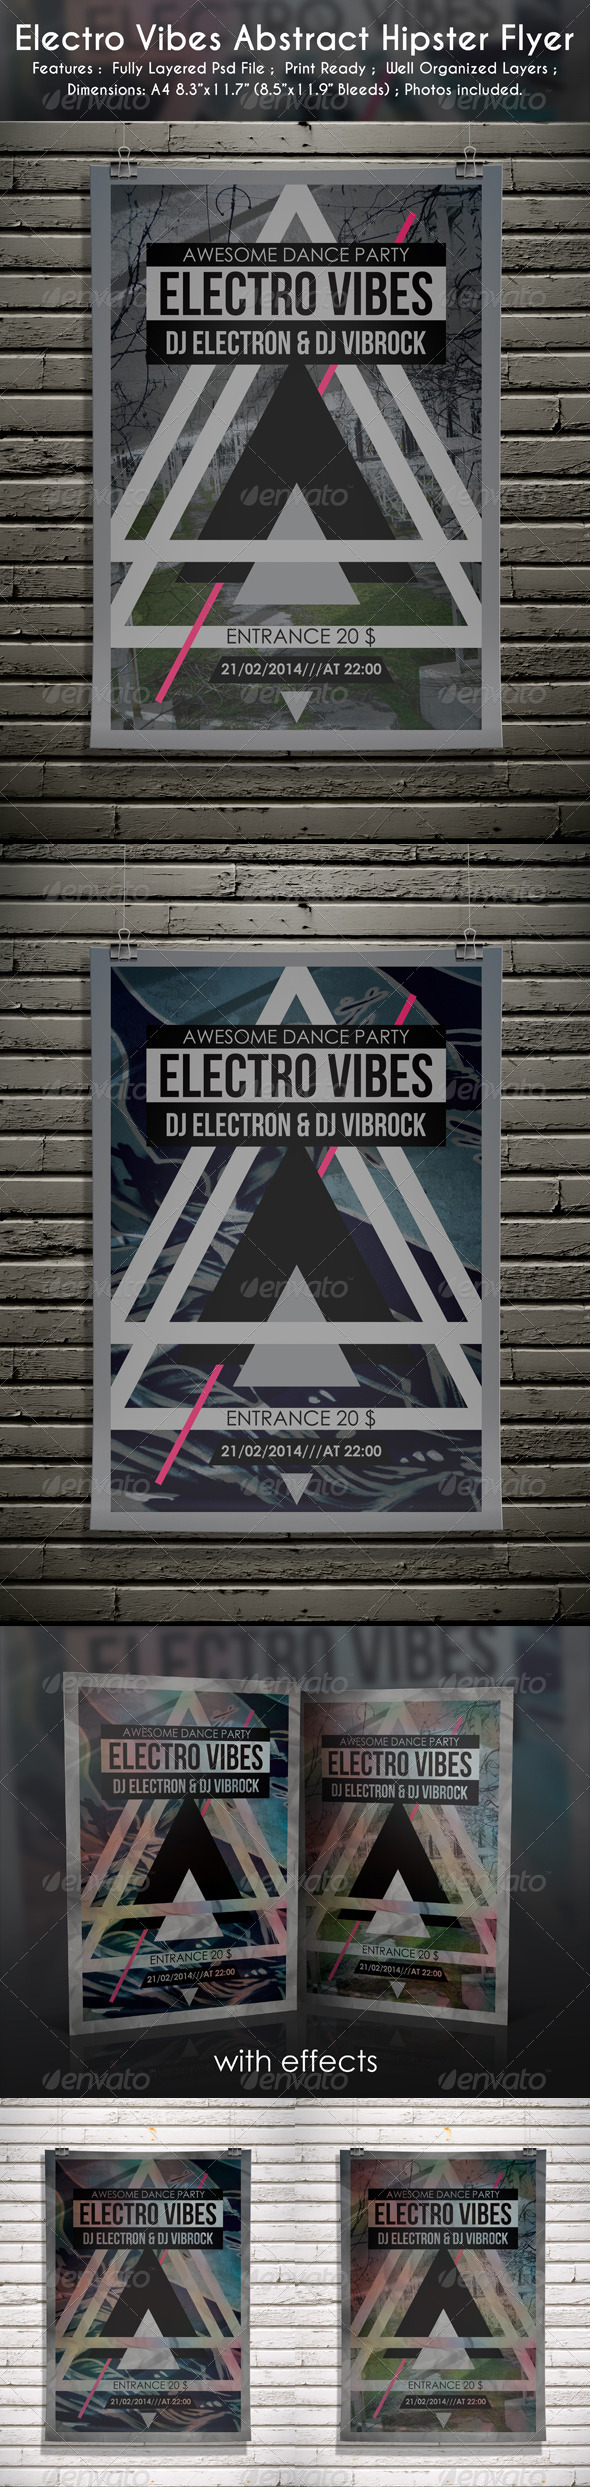 GraphicRiver Electro Vibes Abstract Hipster Flyer 6638331